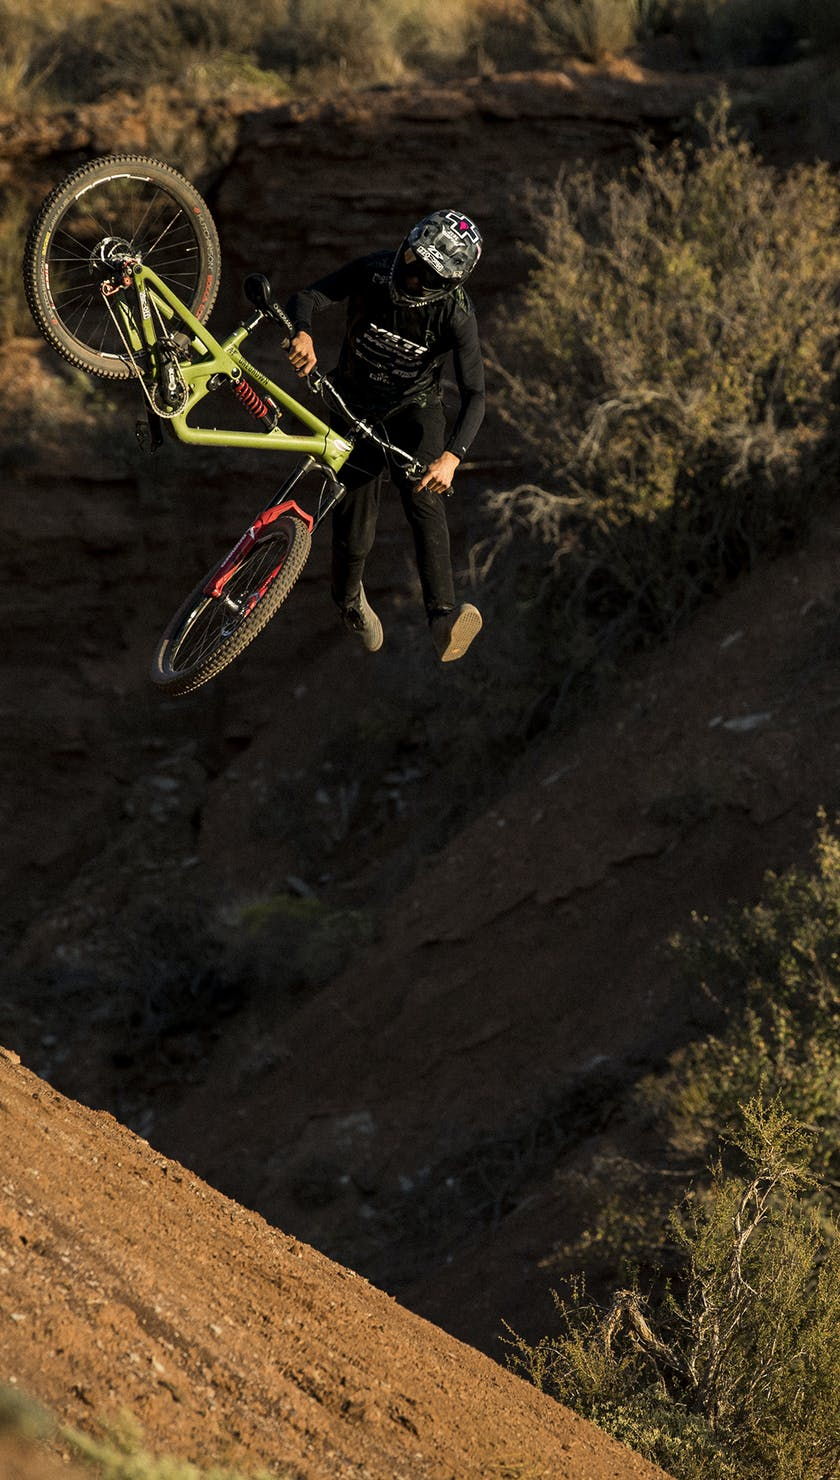 Reed Boggs From Then Till Now - Downside tailwhip